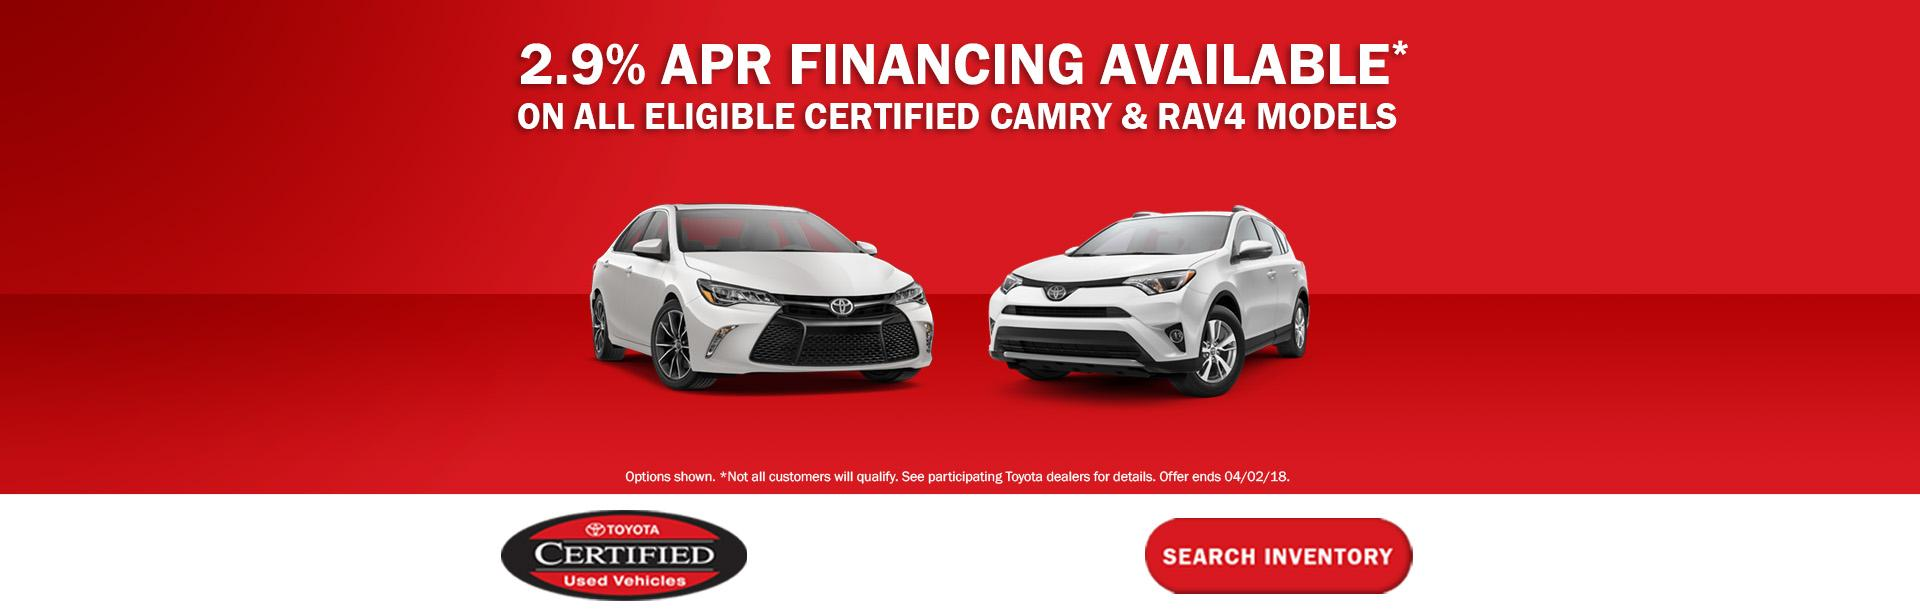 Toyota Camry and RAV4 APR Special